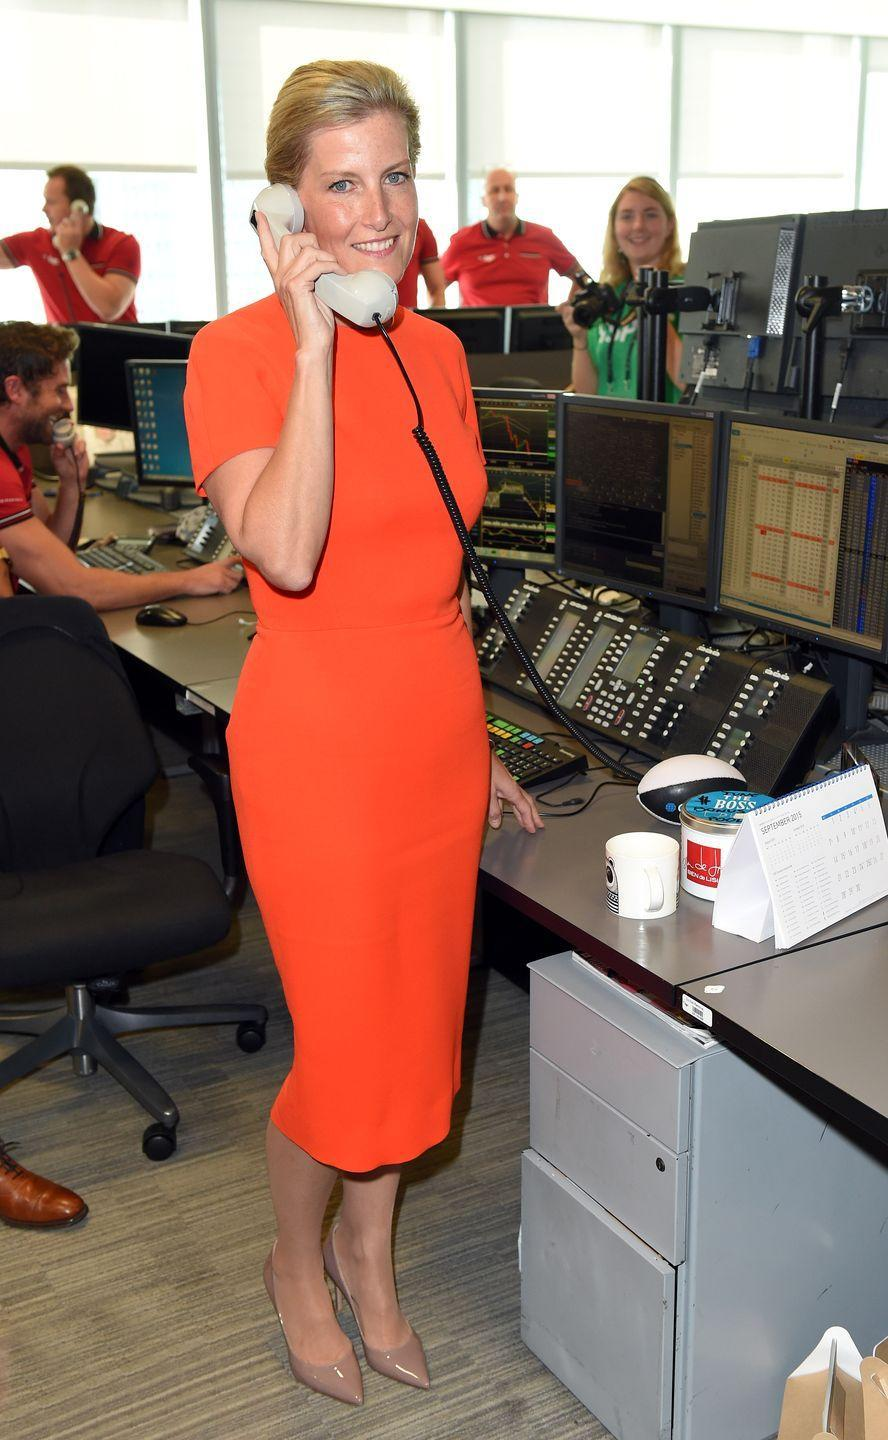 <p>Sophie chose a bright red dress to answer phones for charity in 2015.</p>